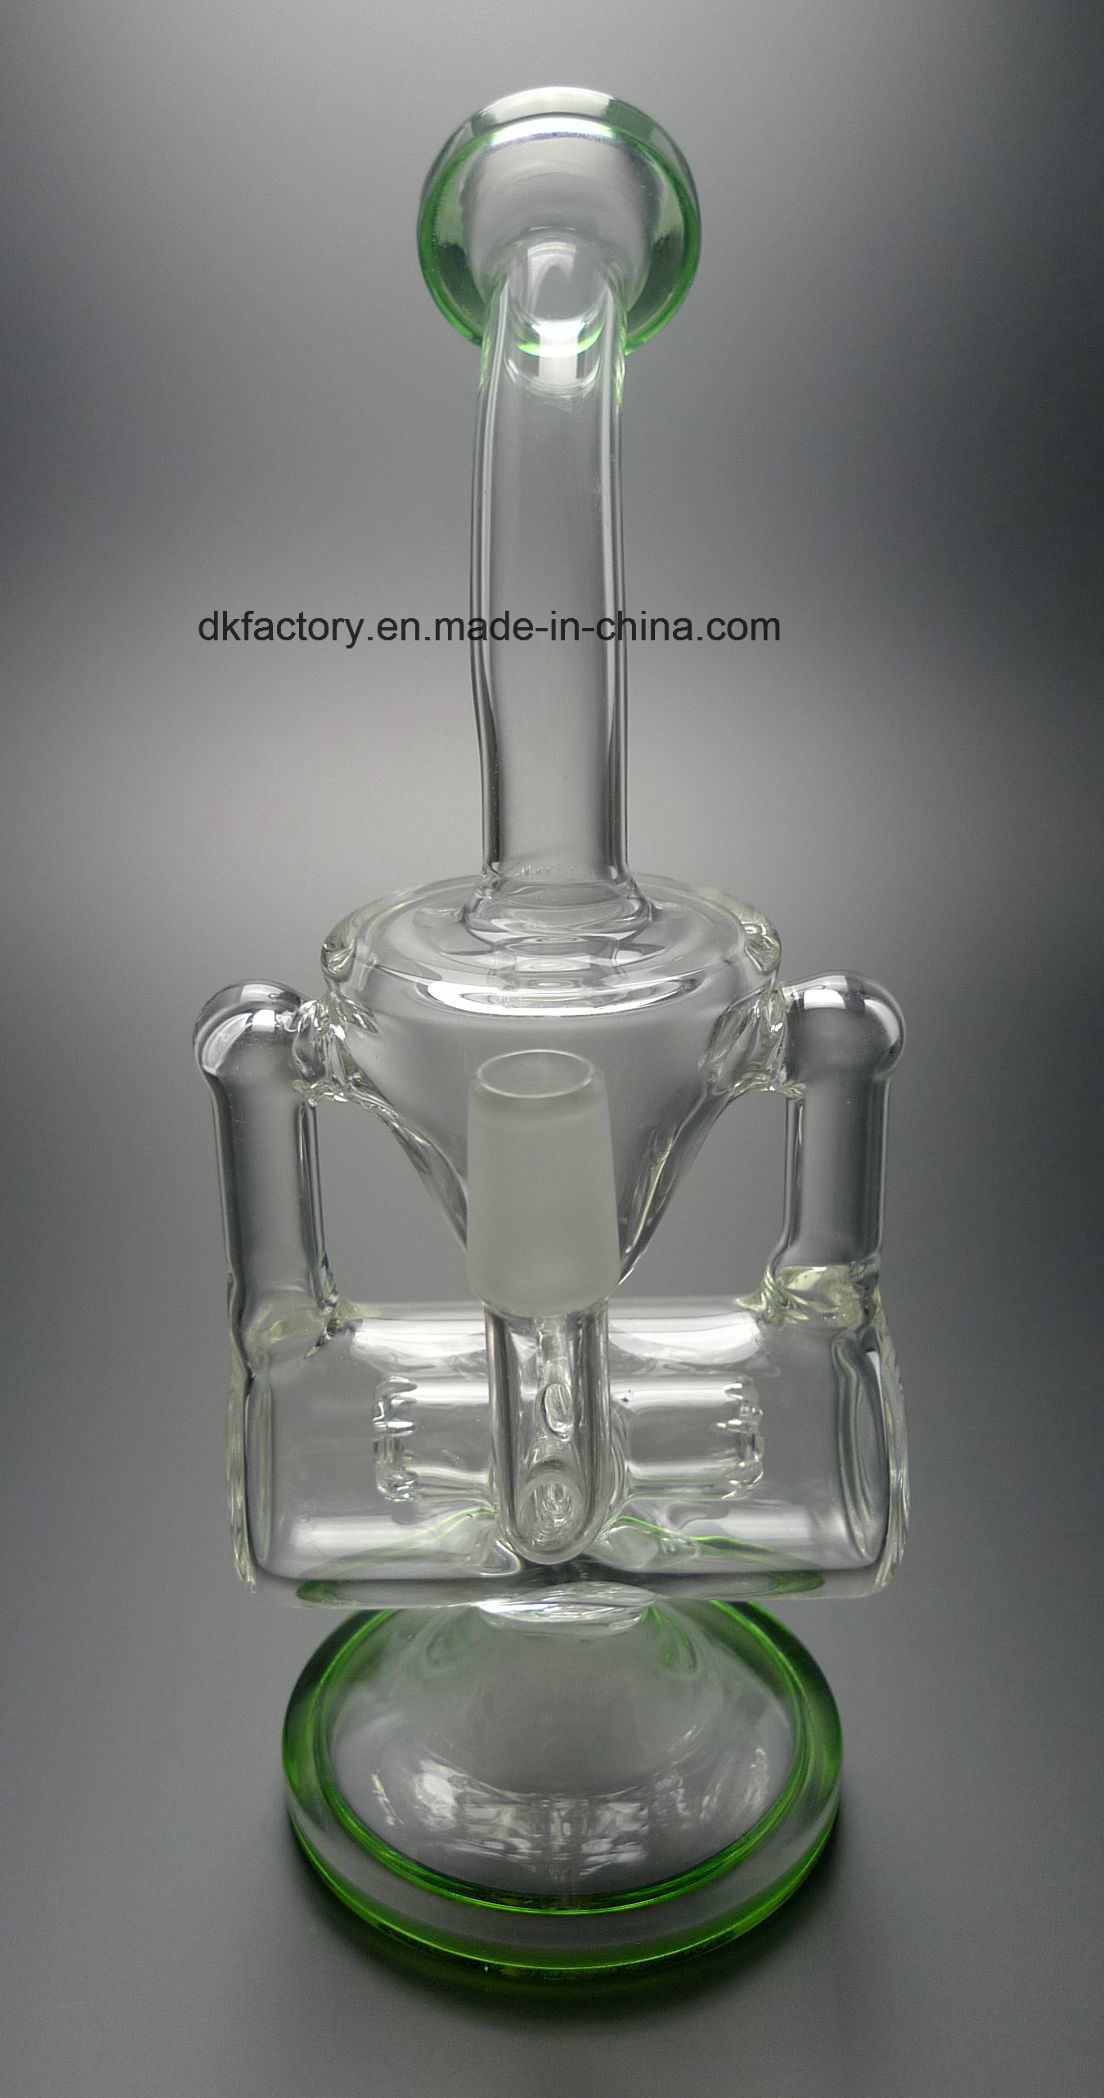 D&K Hot! The New Shisha Hookah Glass The Water Pipe